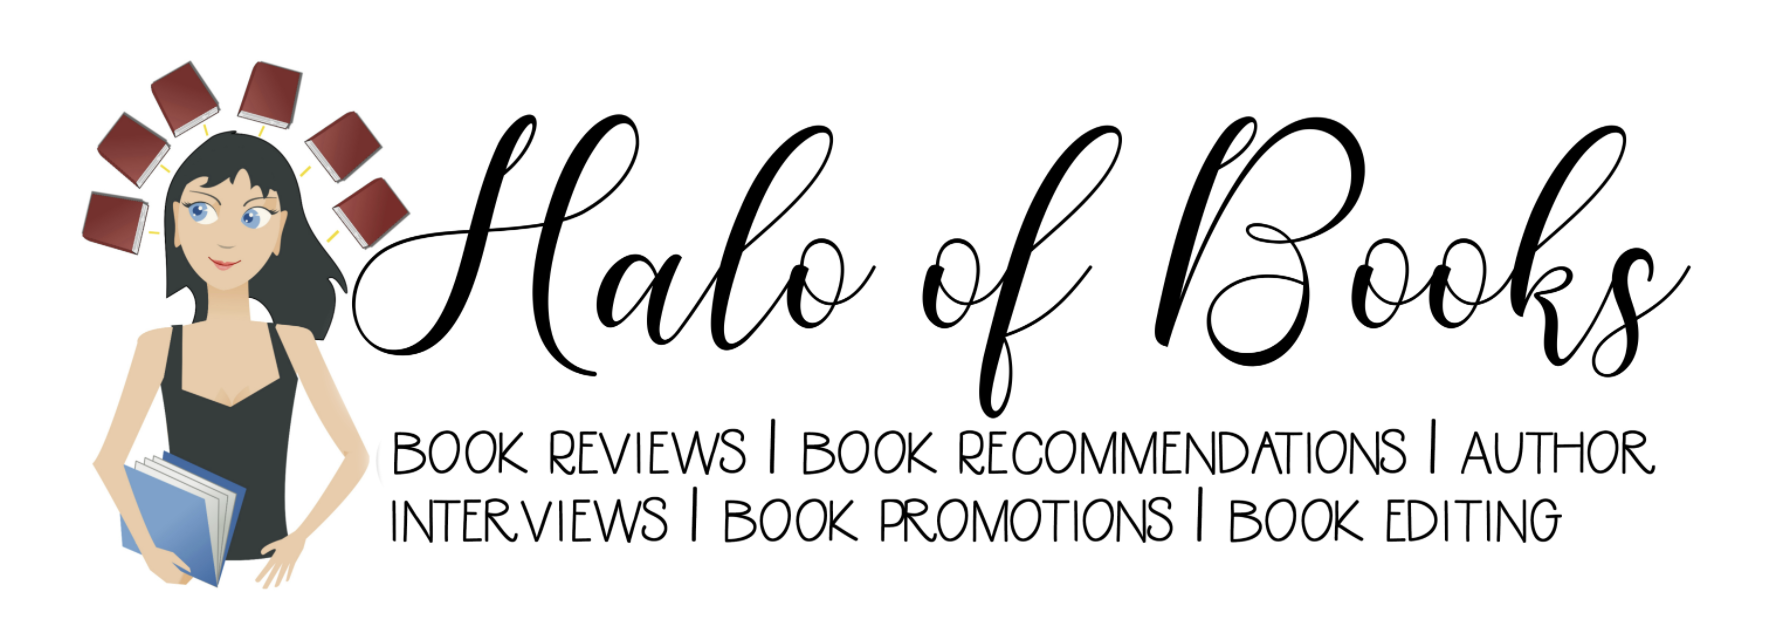 Halo of books – Book reviews